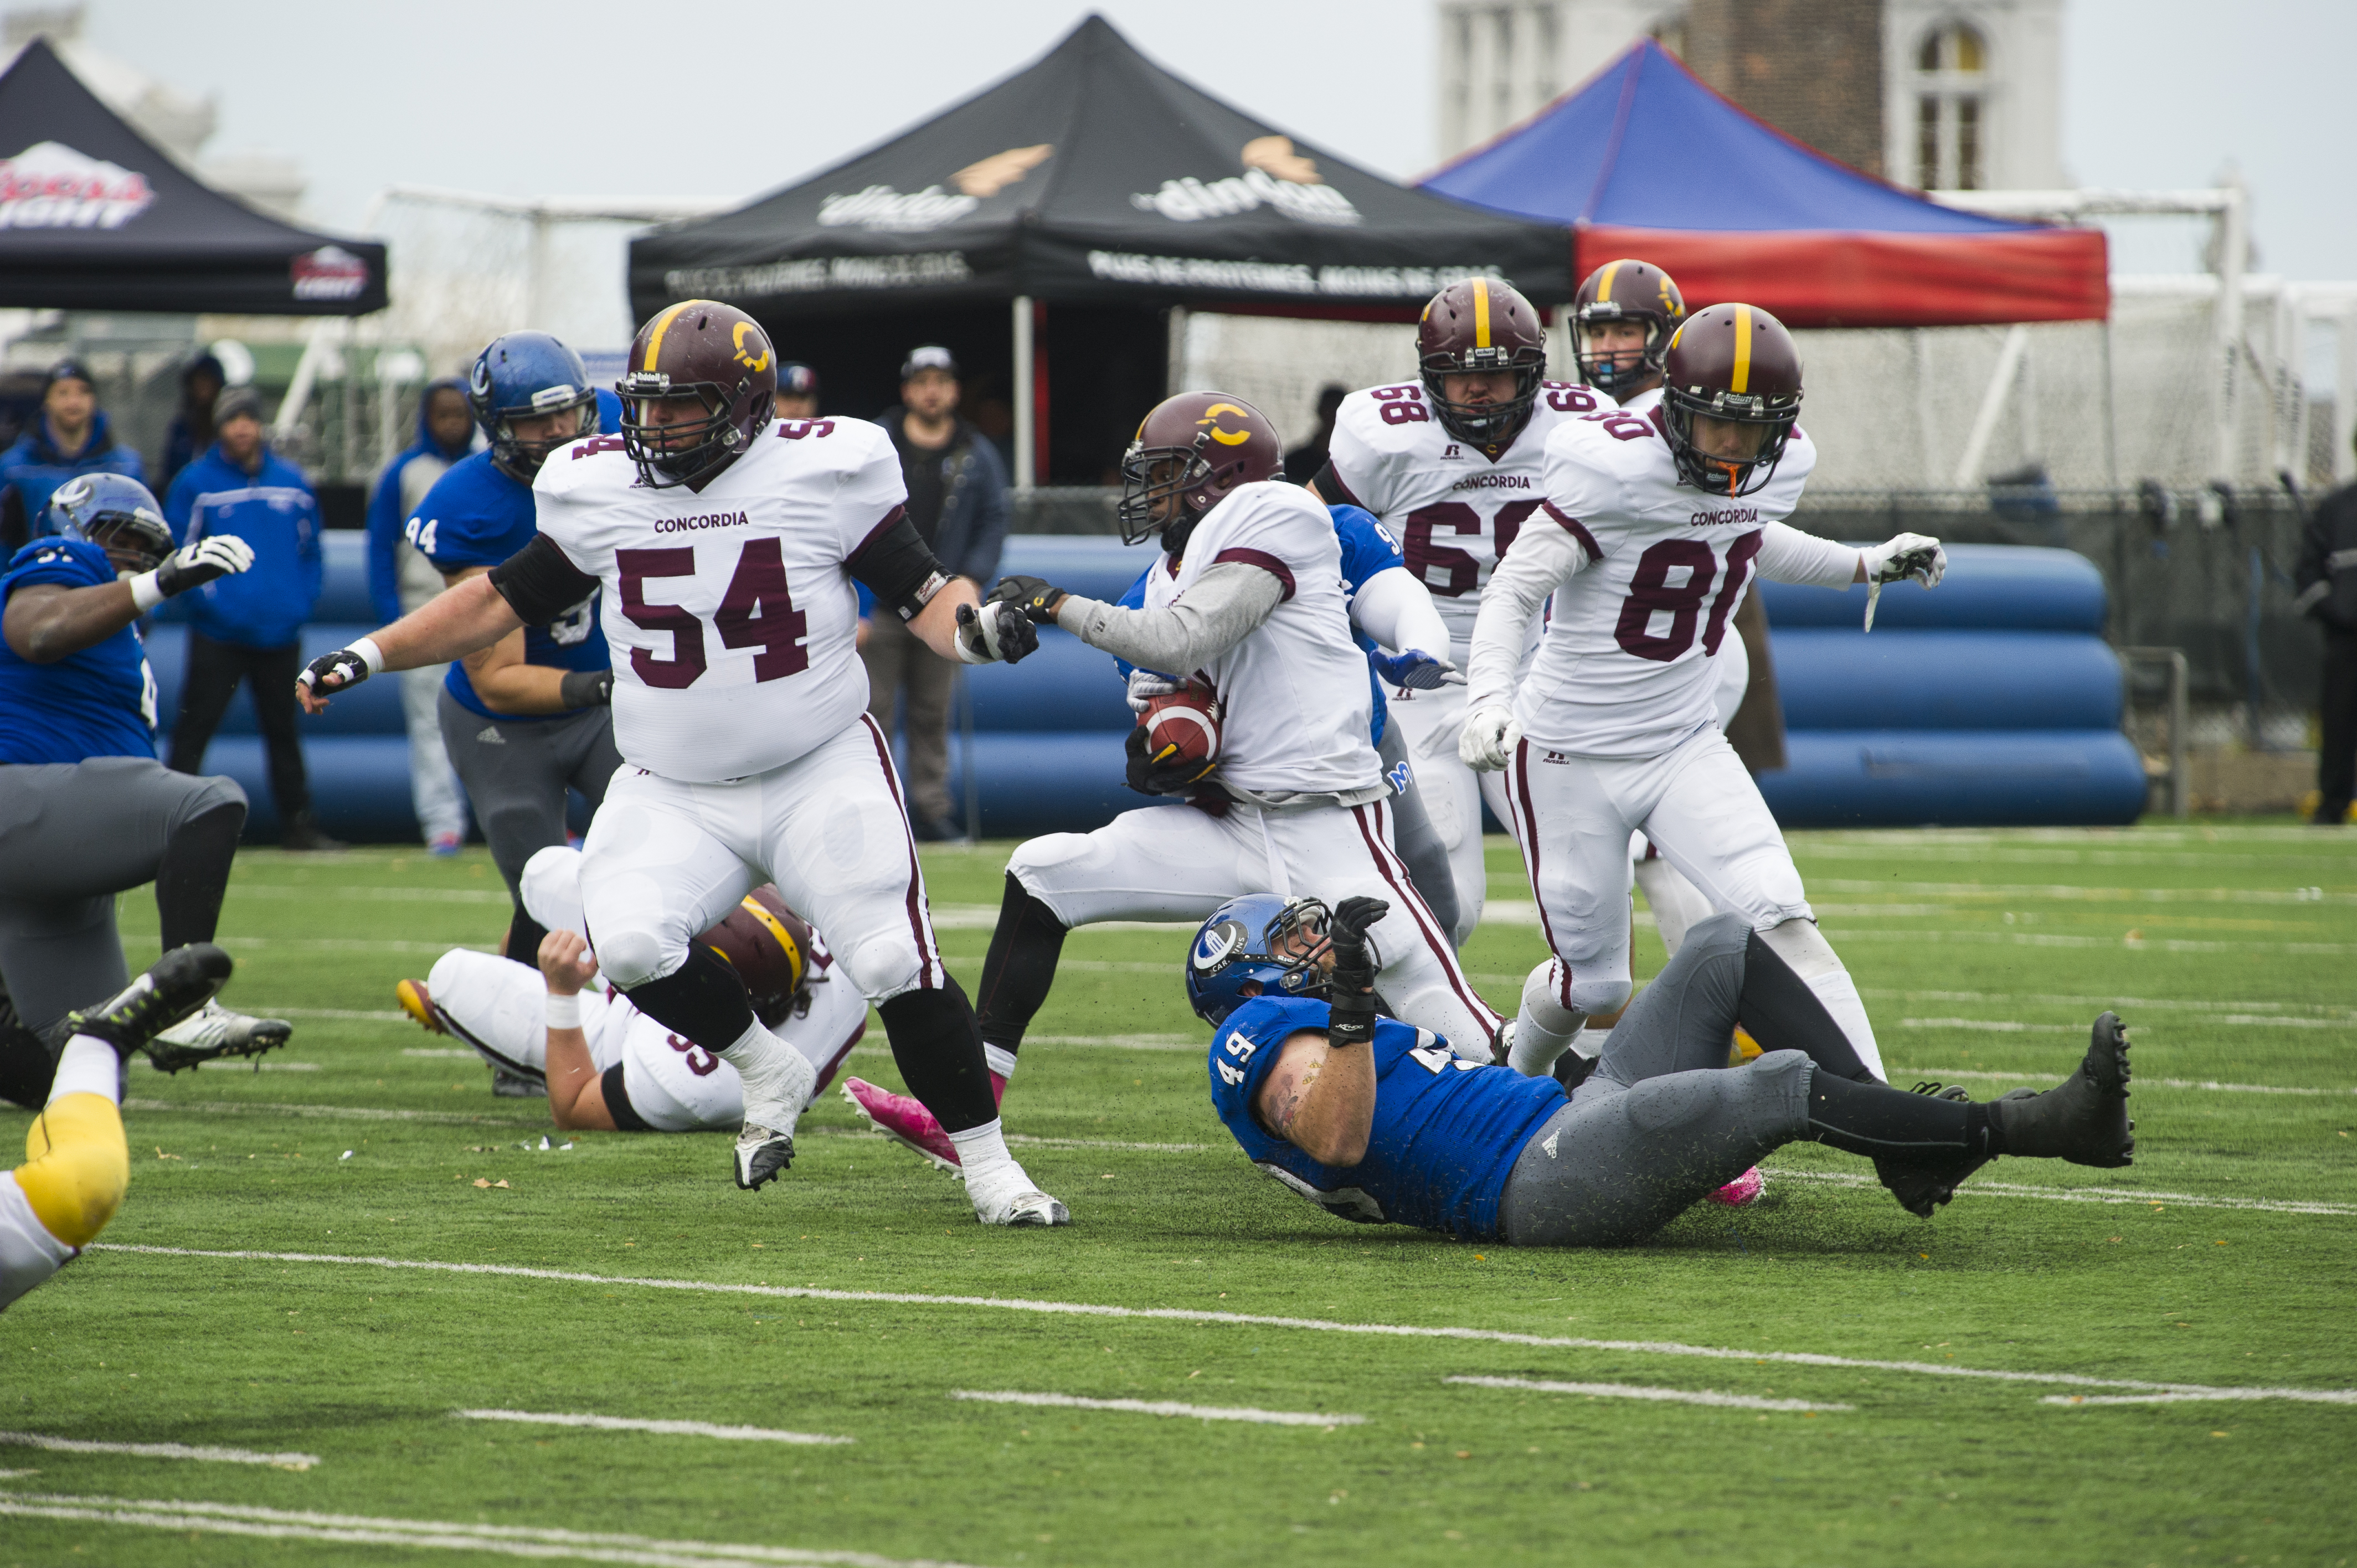 Stingers players clear the way for Jean-Guy Rimpel as he runs the ball. Photo by Andrej Ivanov.